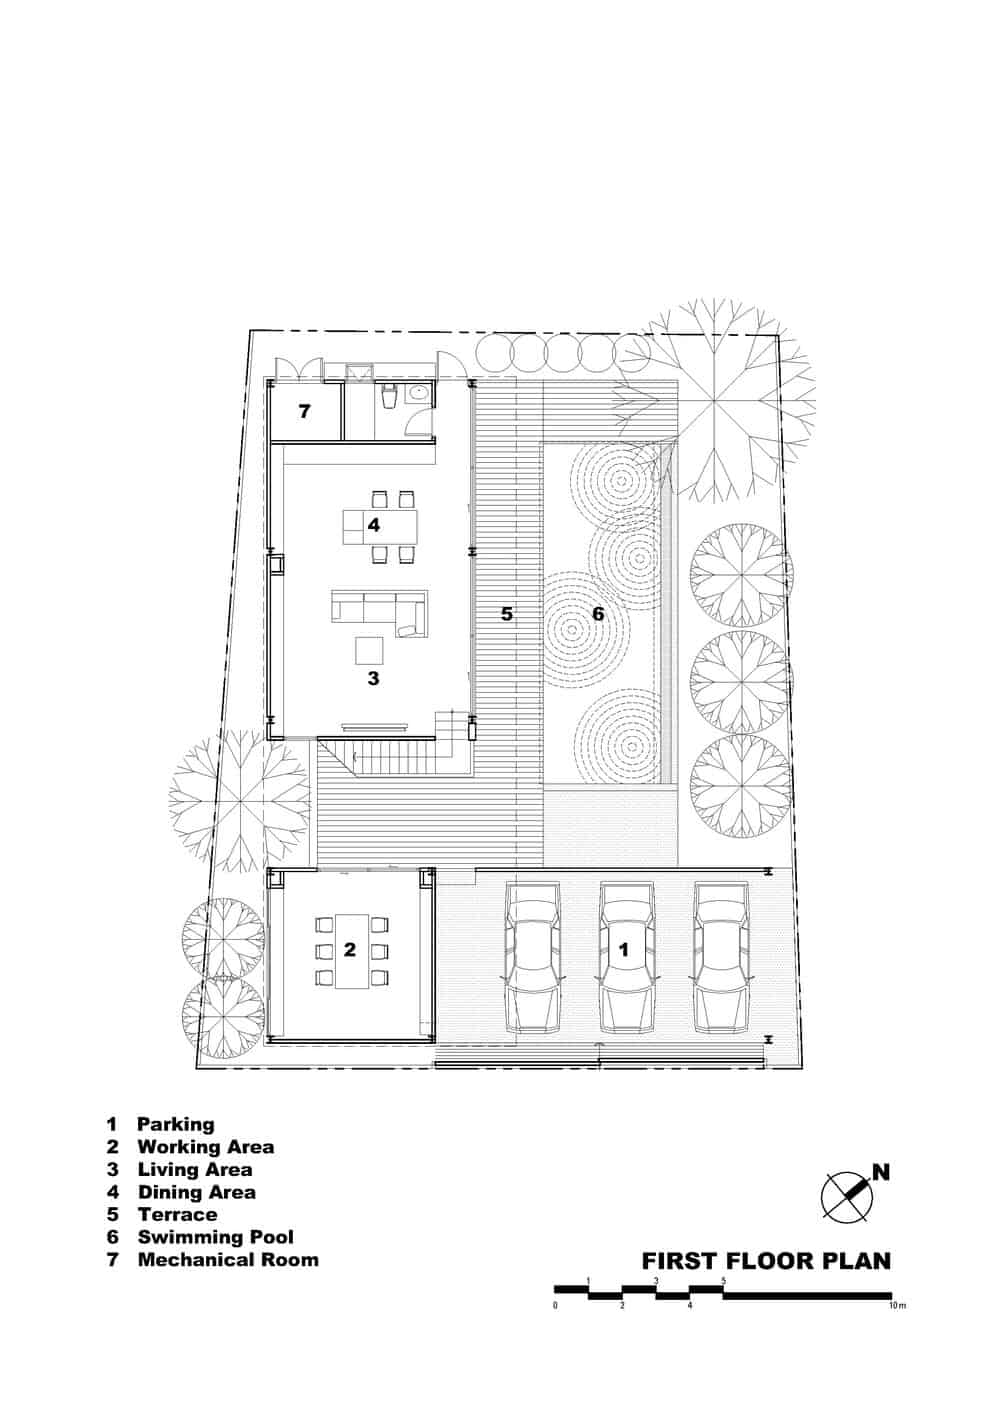 This is an illustration of the first level floor plan of the house with various sections of the house labeled.